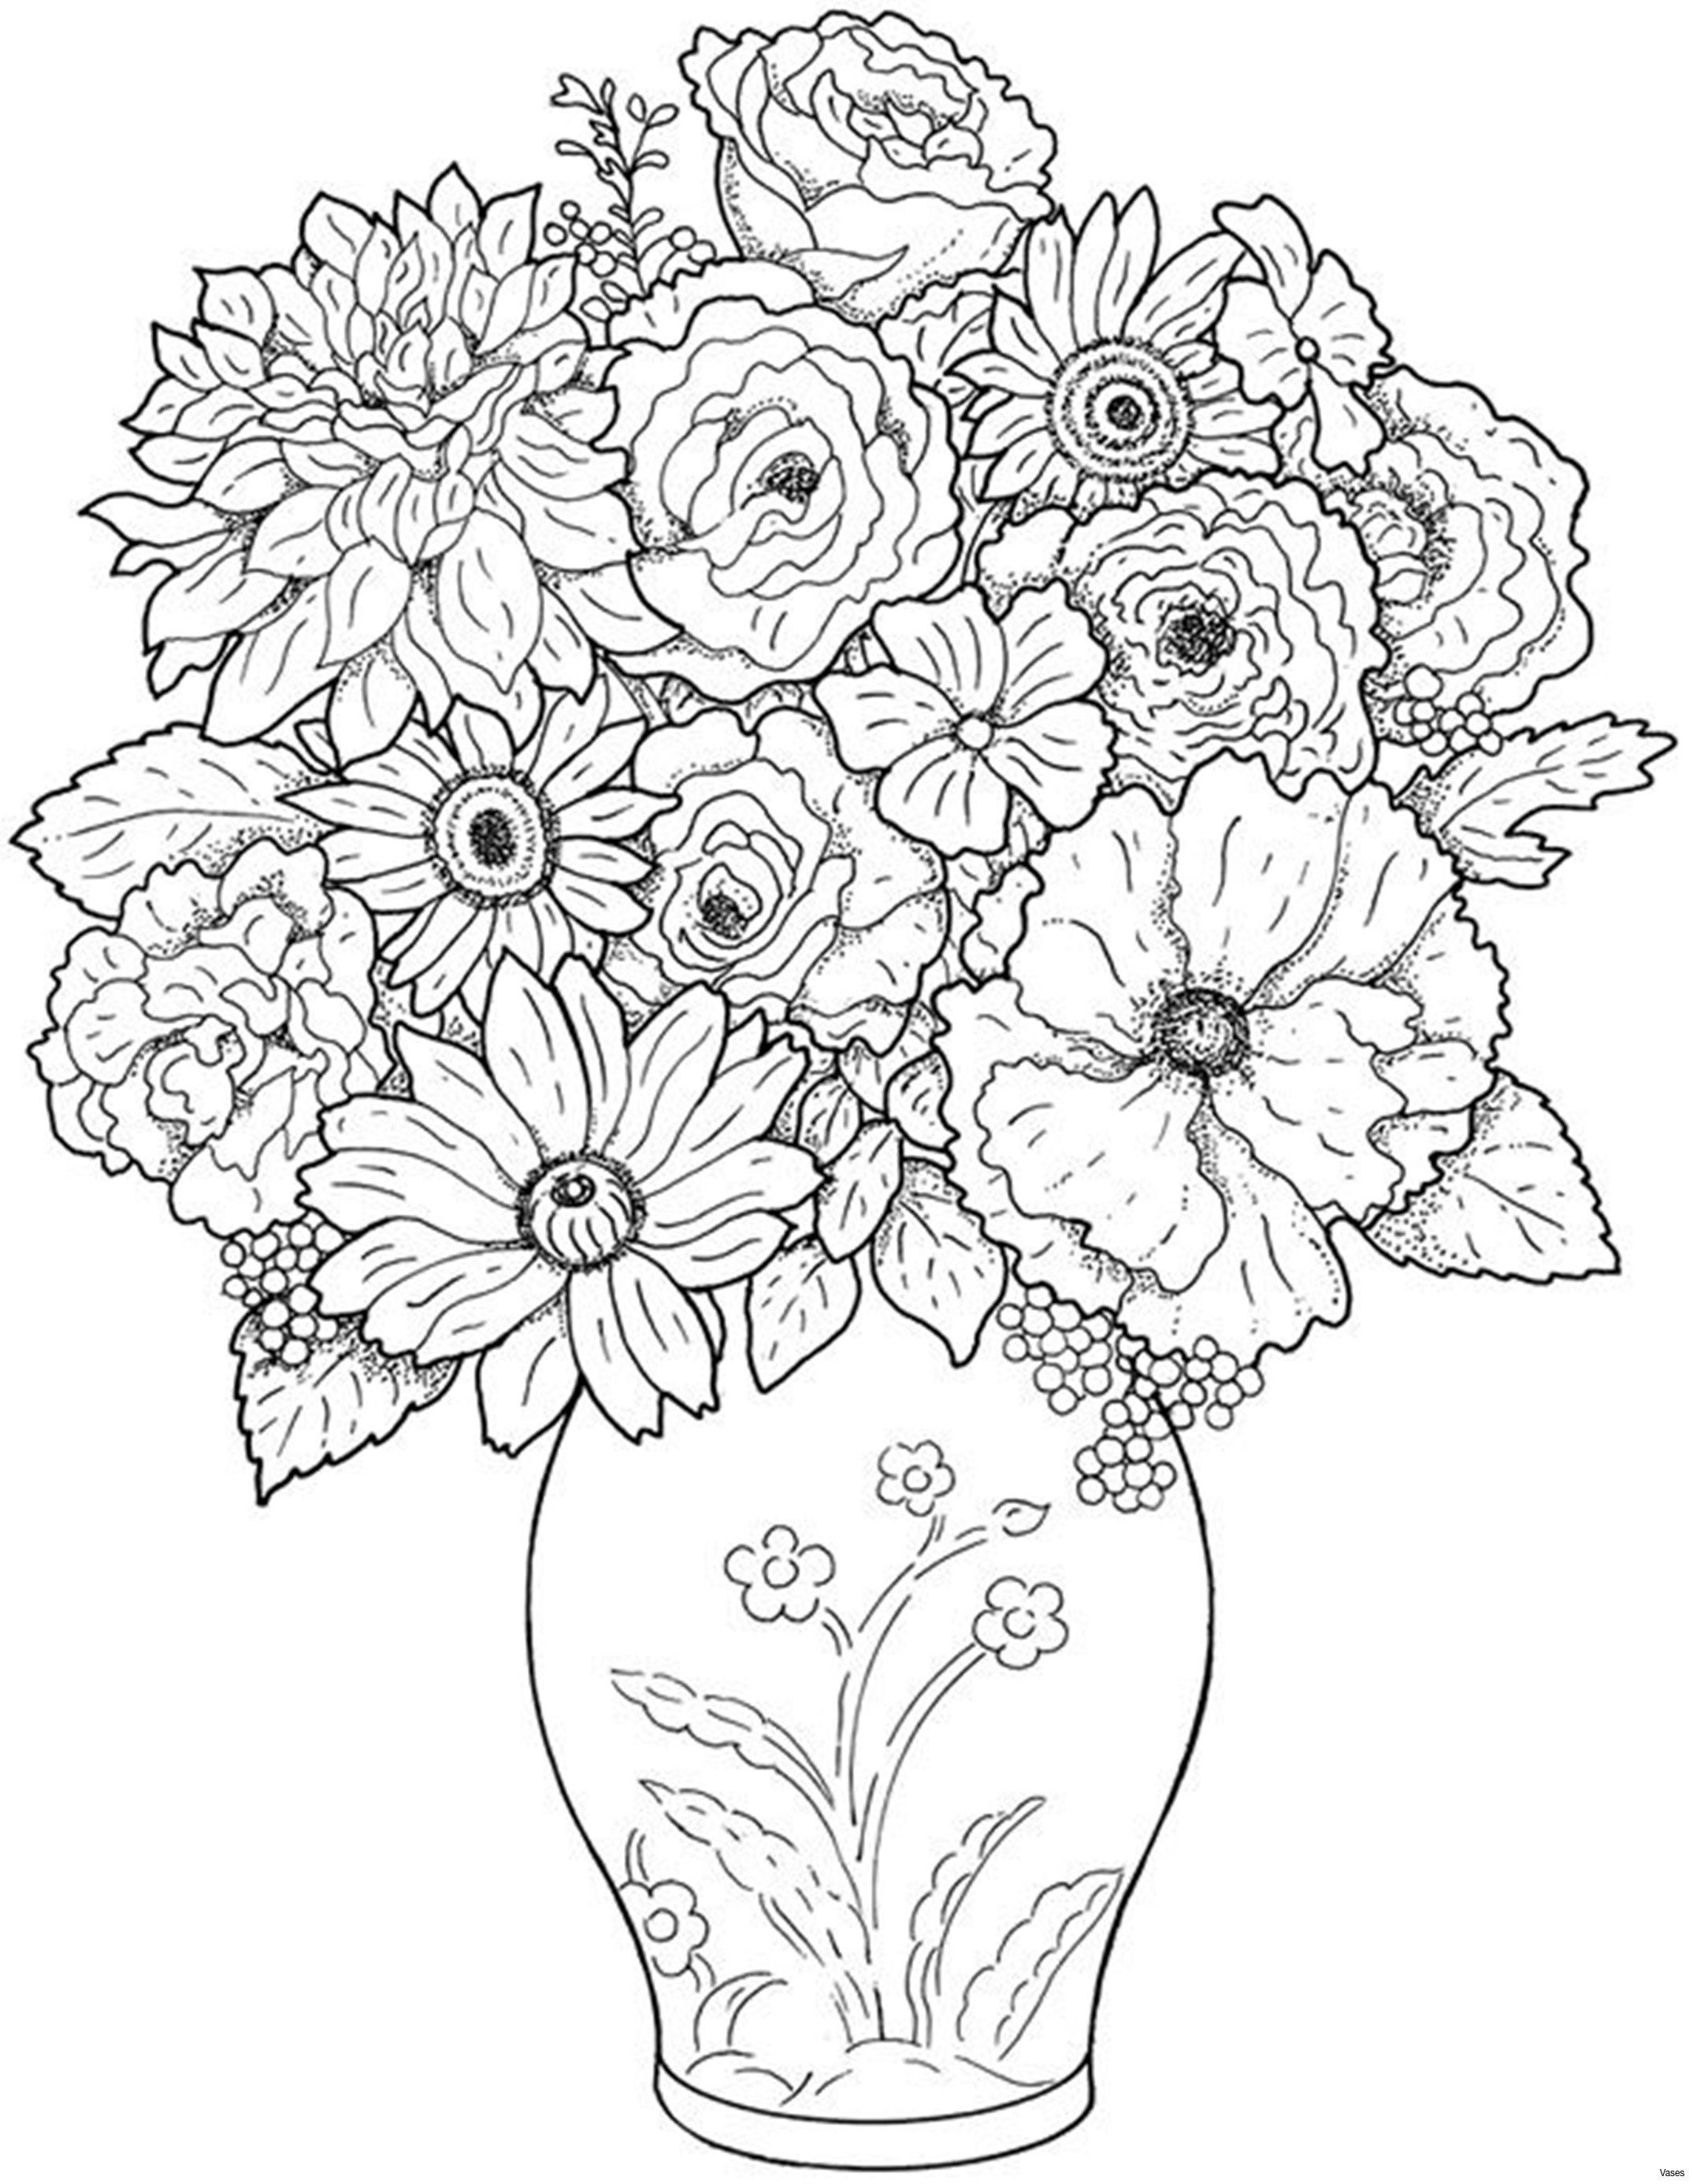 gold flower vases bulk of 50 black and gold vase the weekly world for cool vases flower vase coloring page pages flowers in a top i 0d